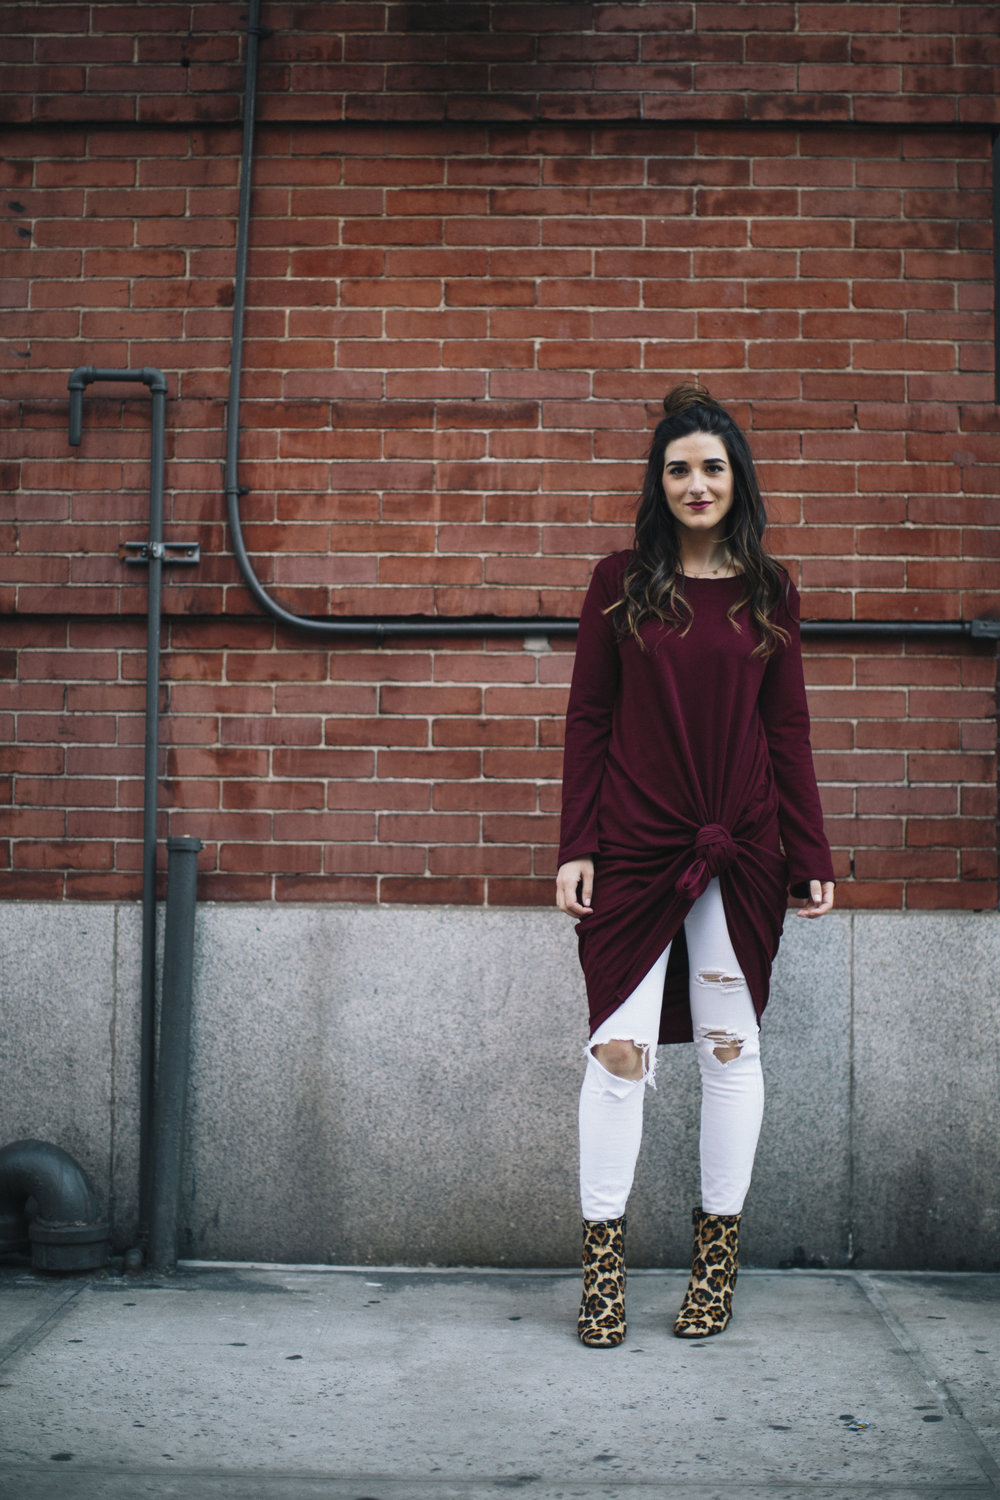 Knotted Dress + Ripped White Jeans 4 Ways To Build Connections Louboutins & Love Fashion Blog Esther Santer NYC Street Style Blogger Outfit OOTD Trendy Red Maroon Burgundy Winter Wear Color Leopard Coach Shoes Booties Pants Girl Women Topknot Bun Hair.jpg